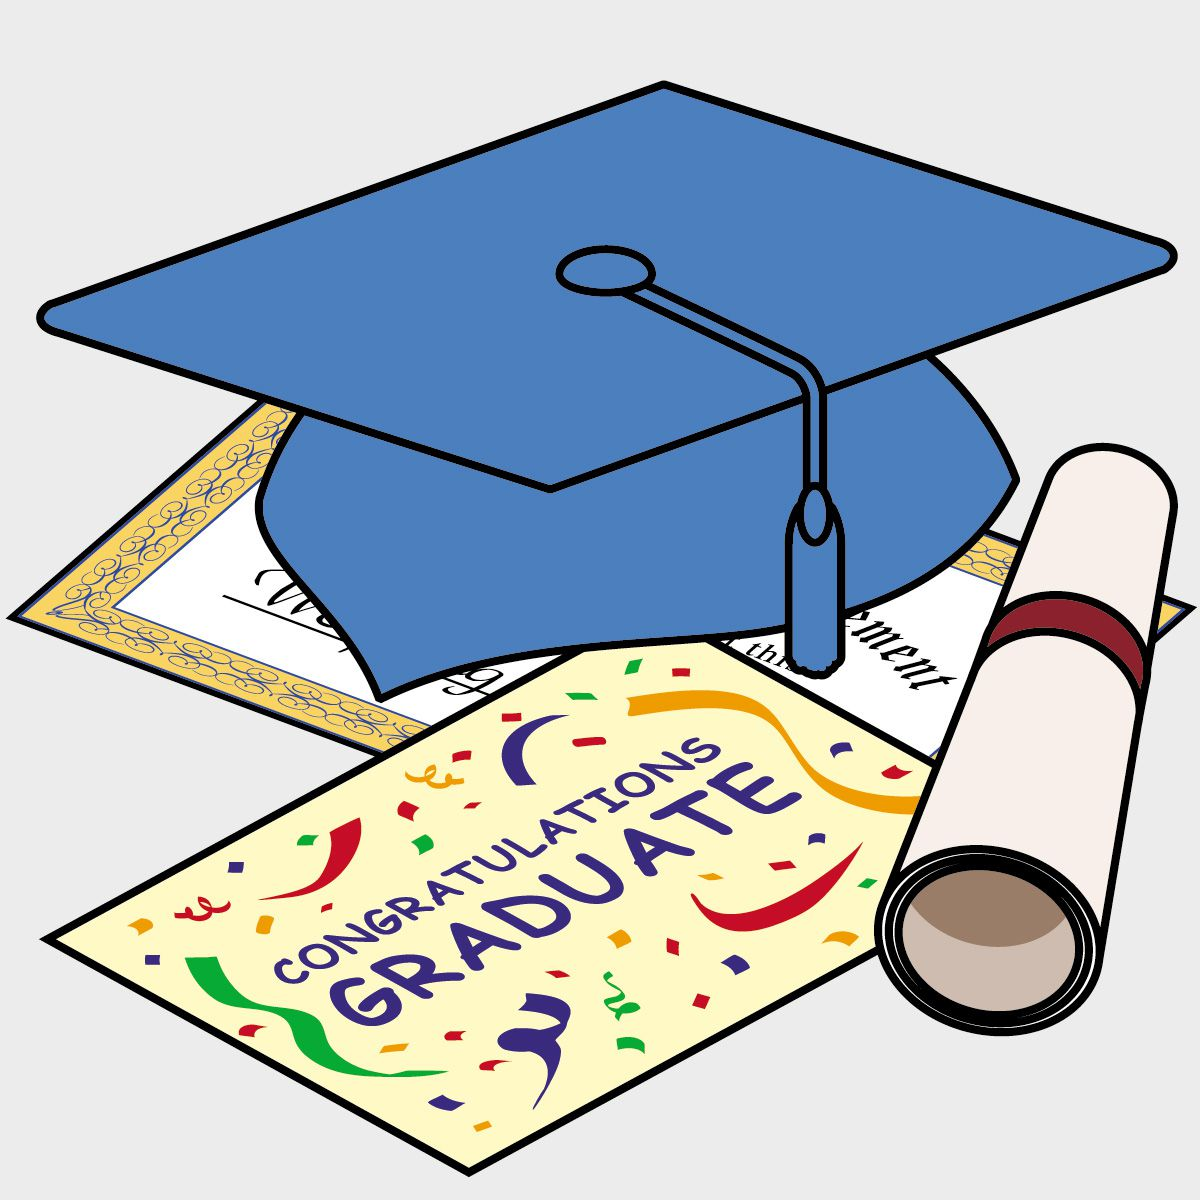 Graduation clip art of a hat and diploma